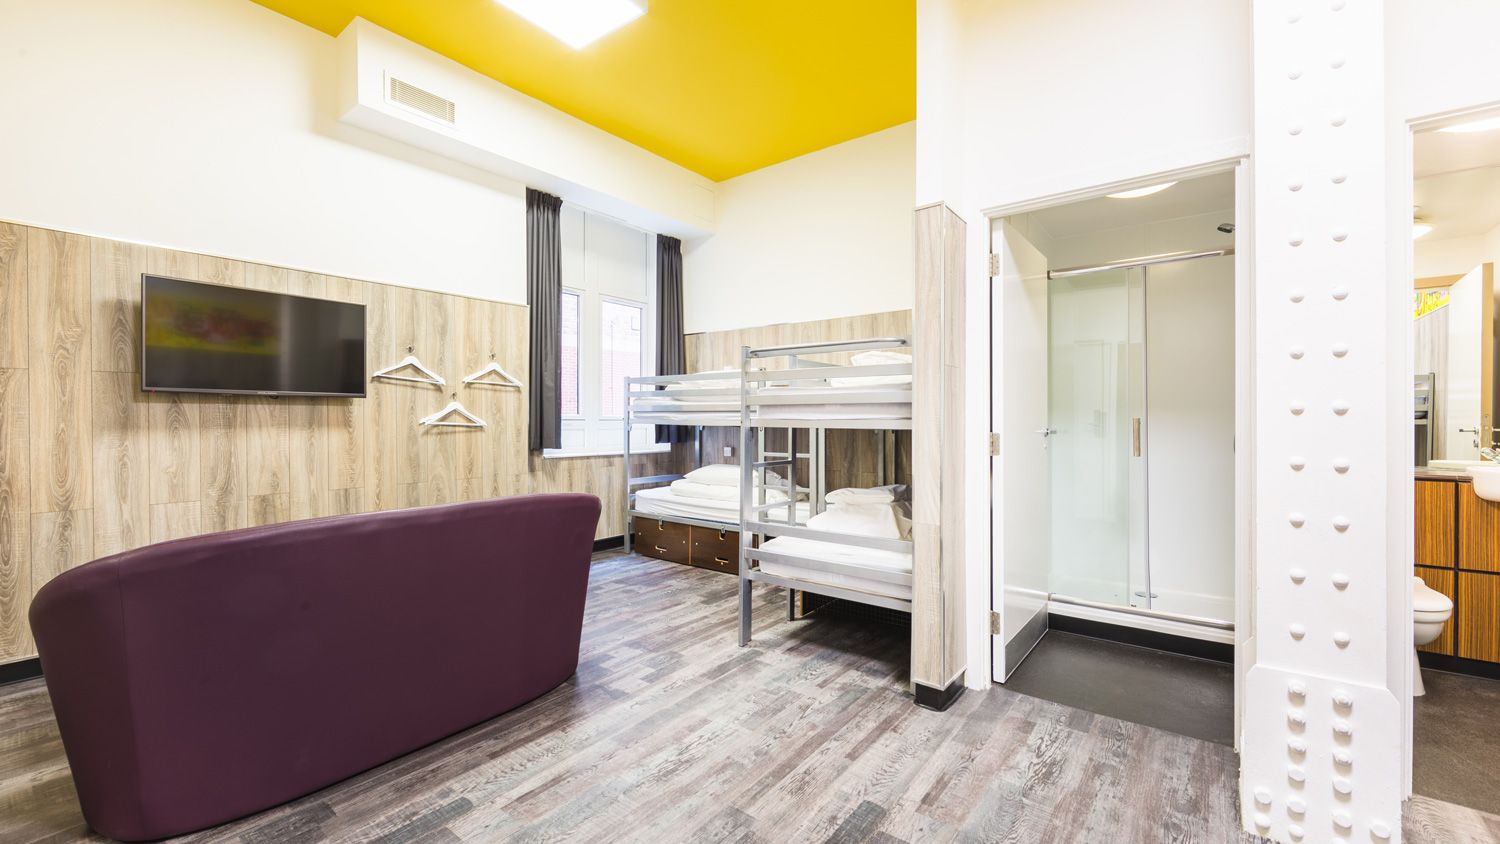 Mini Suite for 8 People at Euro Hostel Newcastle